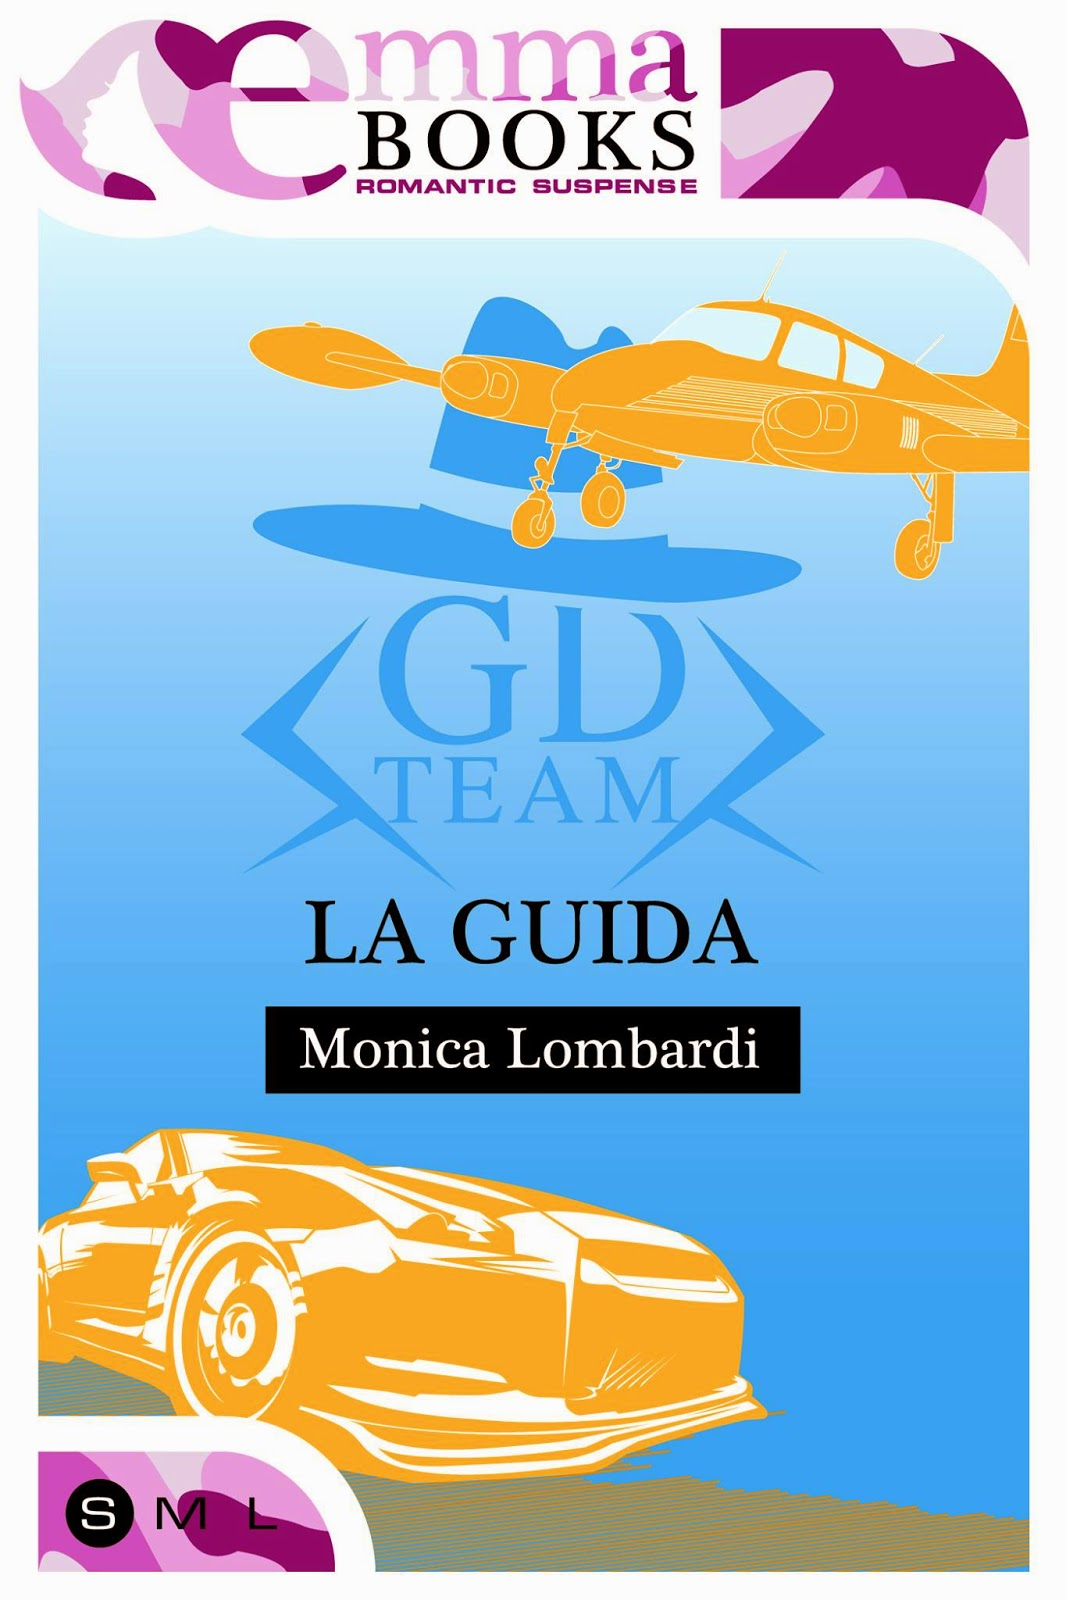 GD Team – La Guida, di Monica Lombardi